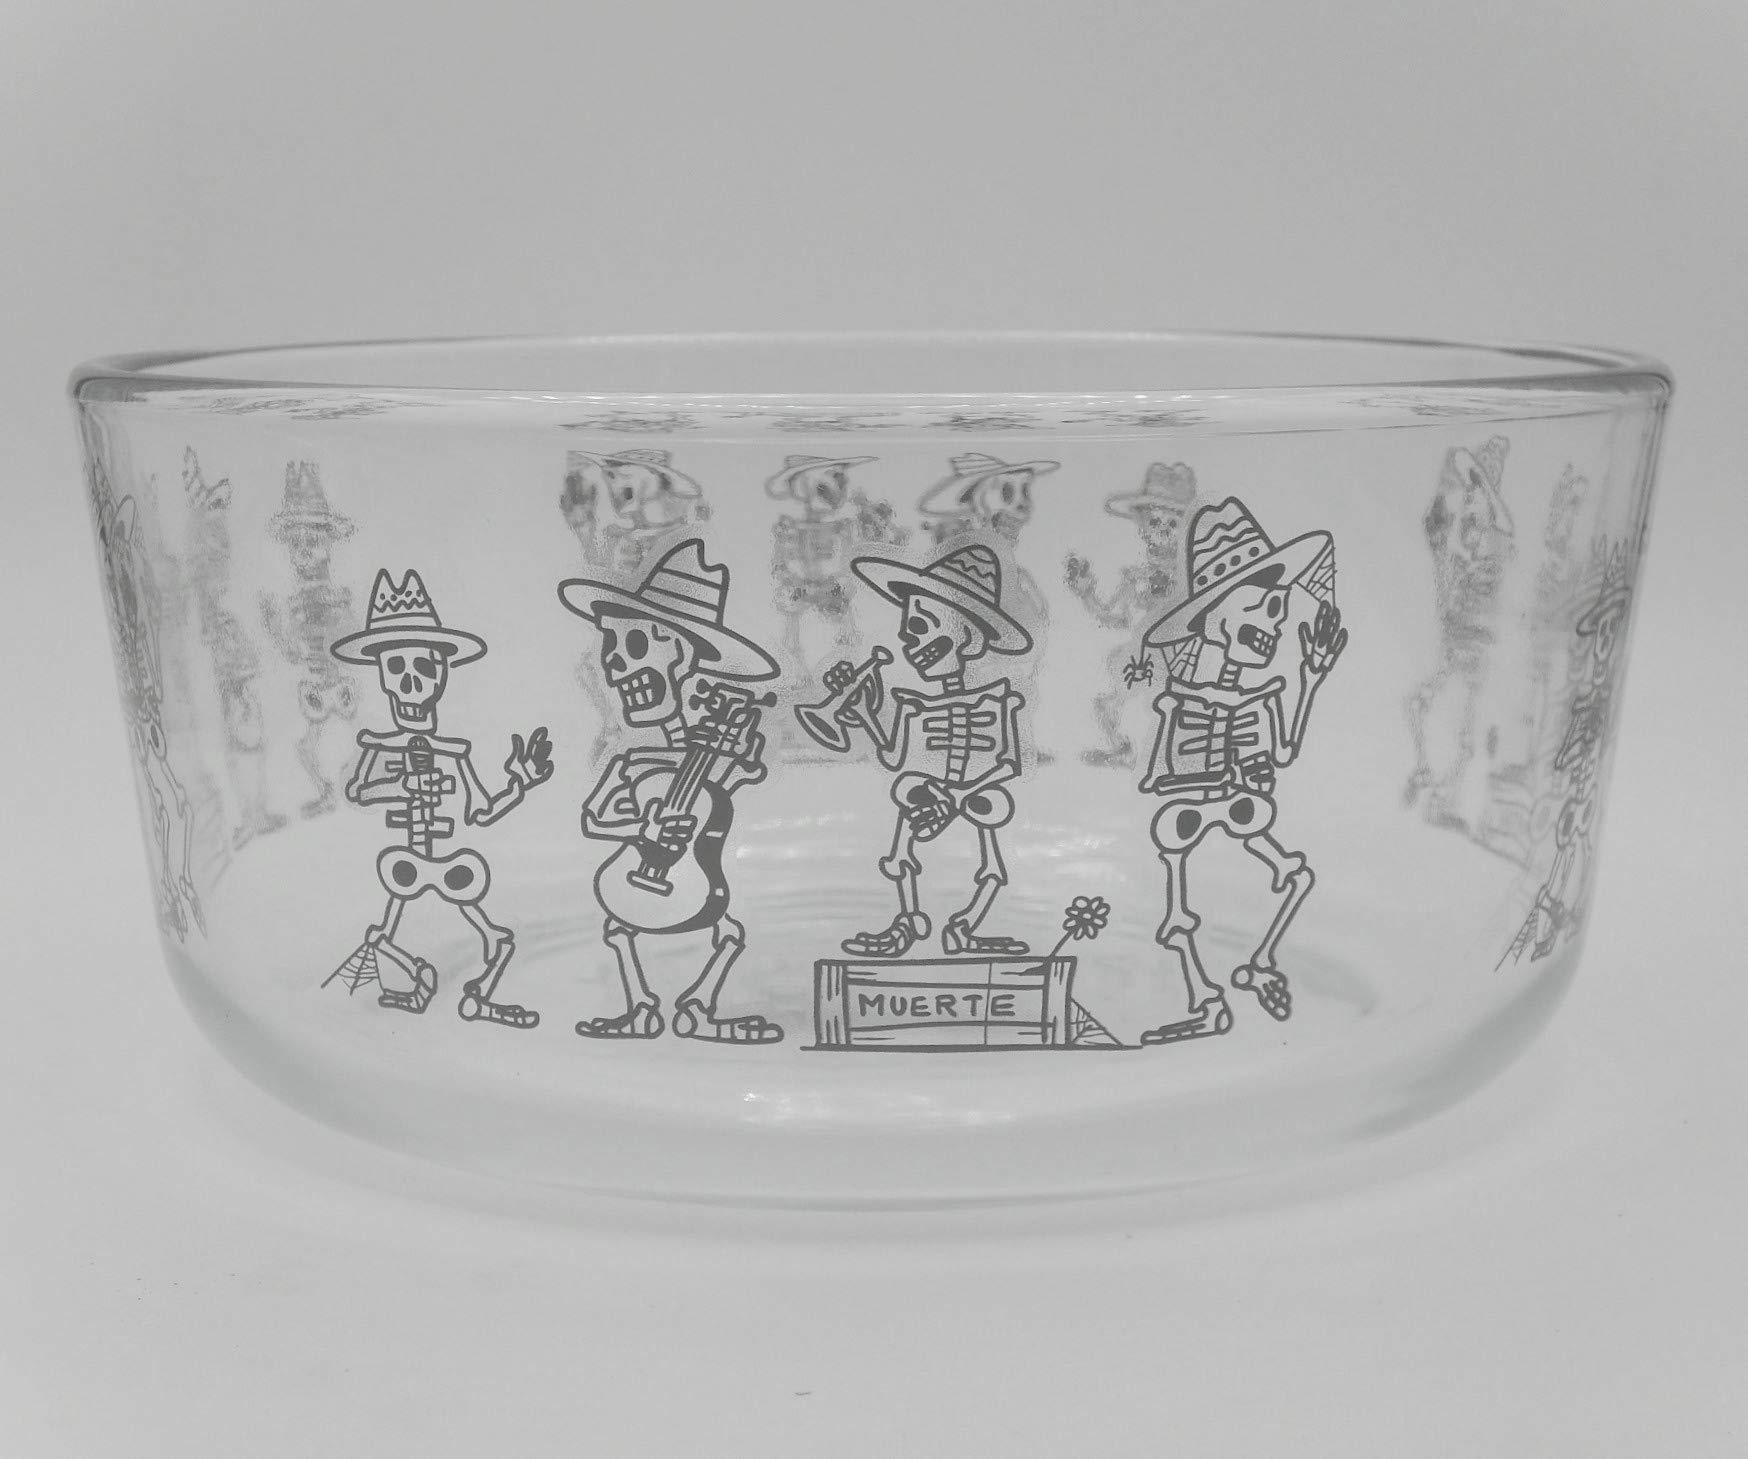 Simply Store Day of the Dead Mariachi Band Glass Bowl with Cover 7 Cup Container